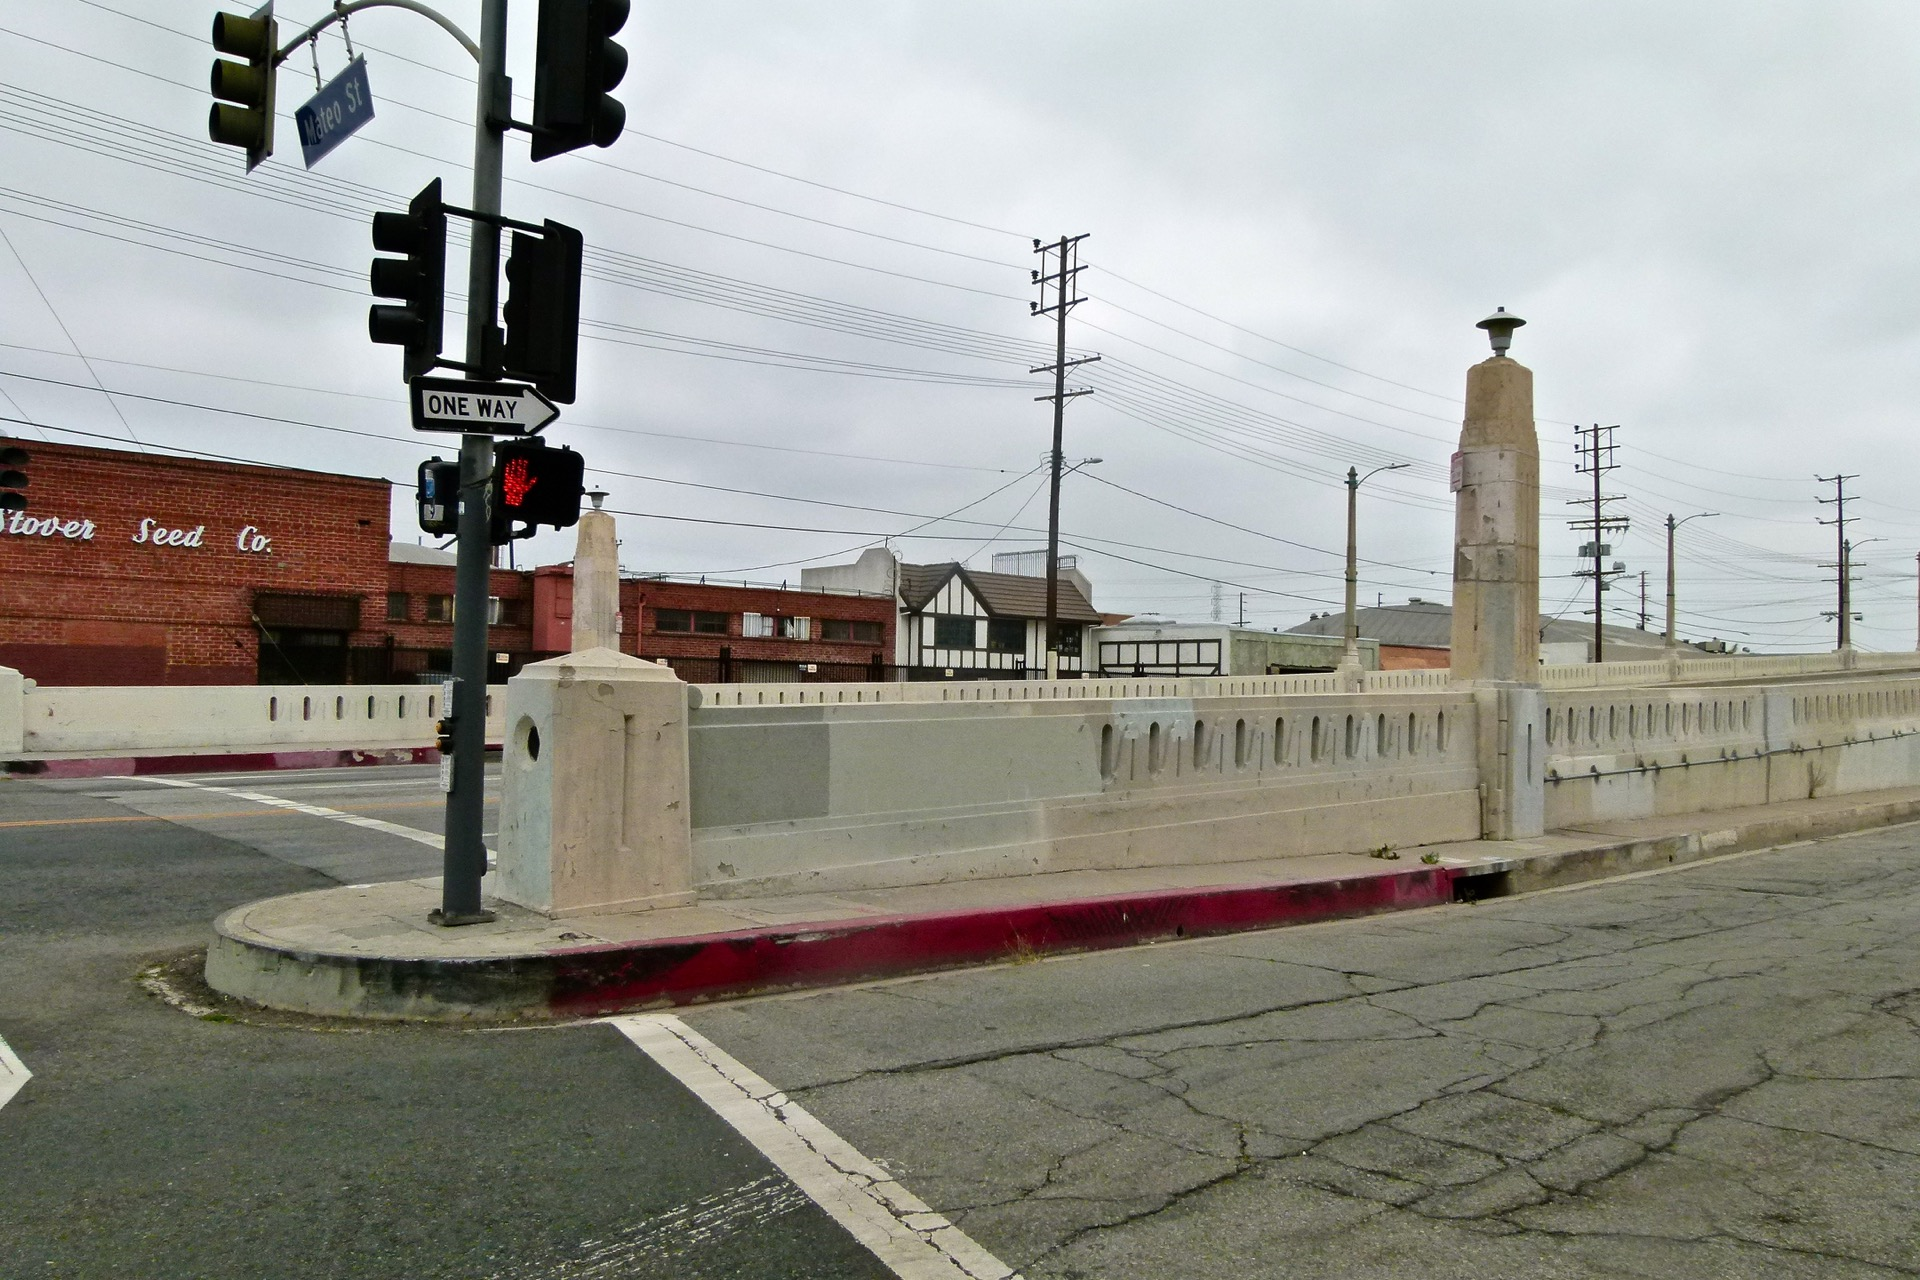 6th_street_bridge_001.jpg